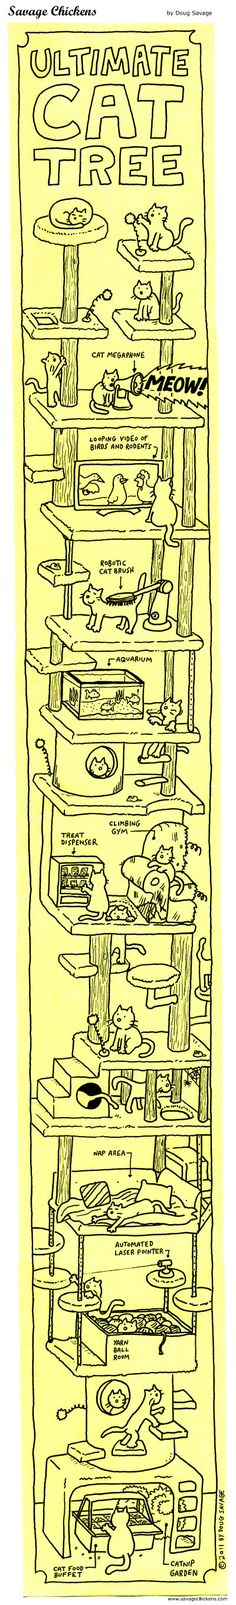 Ultimate Cat Tree Cartoon | Savage Chickens - Cartoons on Sticky Notes by Doug Savage